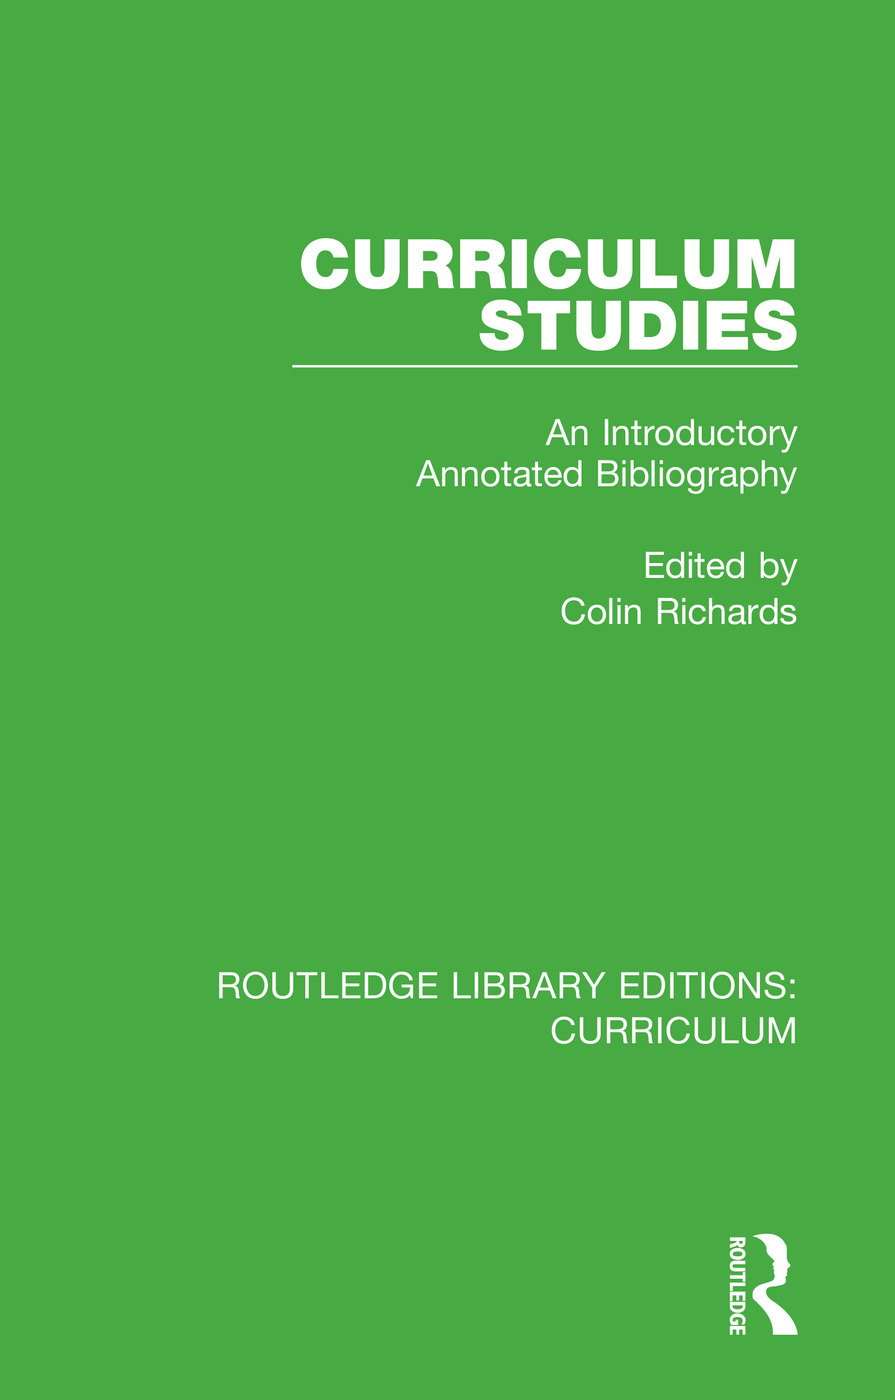 Curriculum Studies: An Introductory Annotated Bibliography book cover